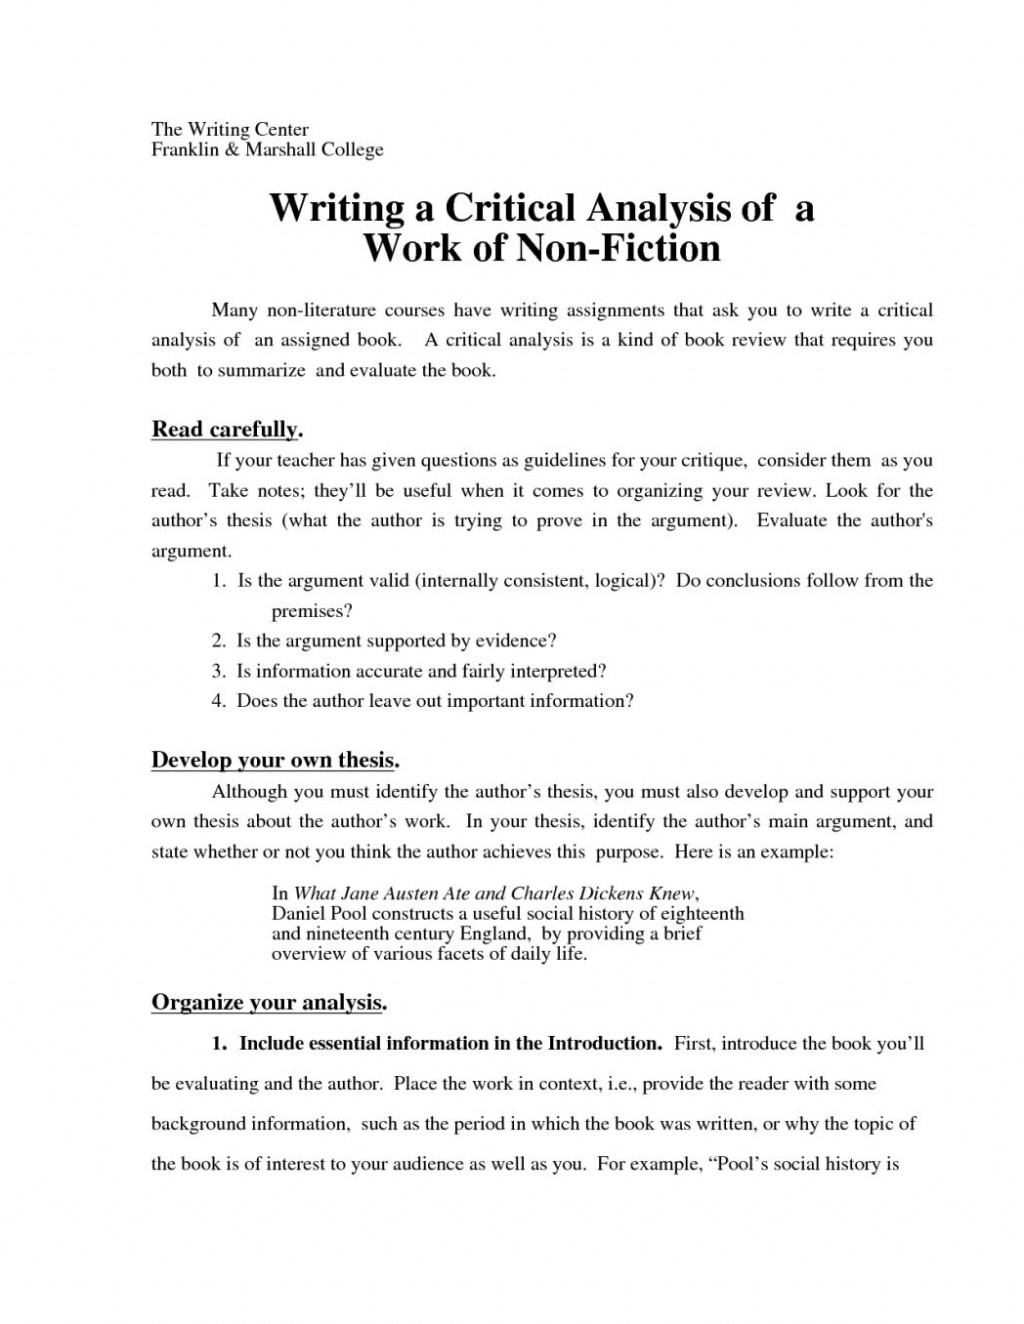 007 Critical Review Essay Example Analysis Paper How To Write Research Intended For Tem Examples Art Mla Pdf Nursing Apa In Social Work Education Sample Frightening Of Journal Article Systematic Writing A Large